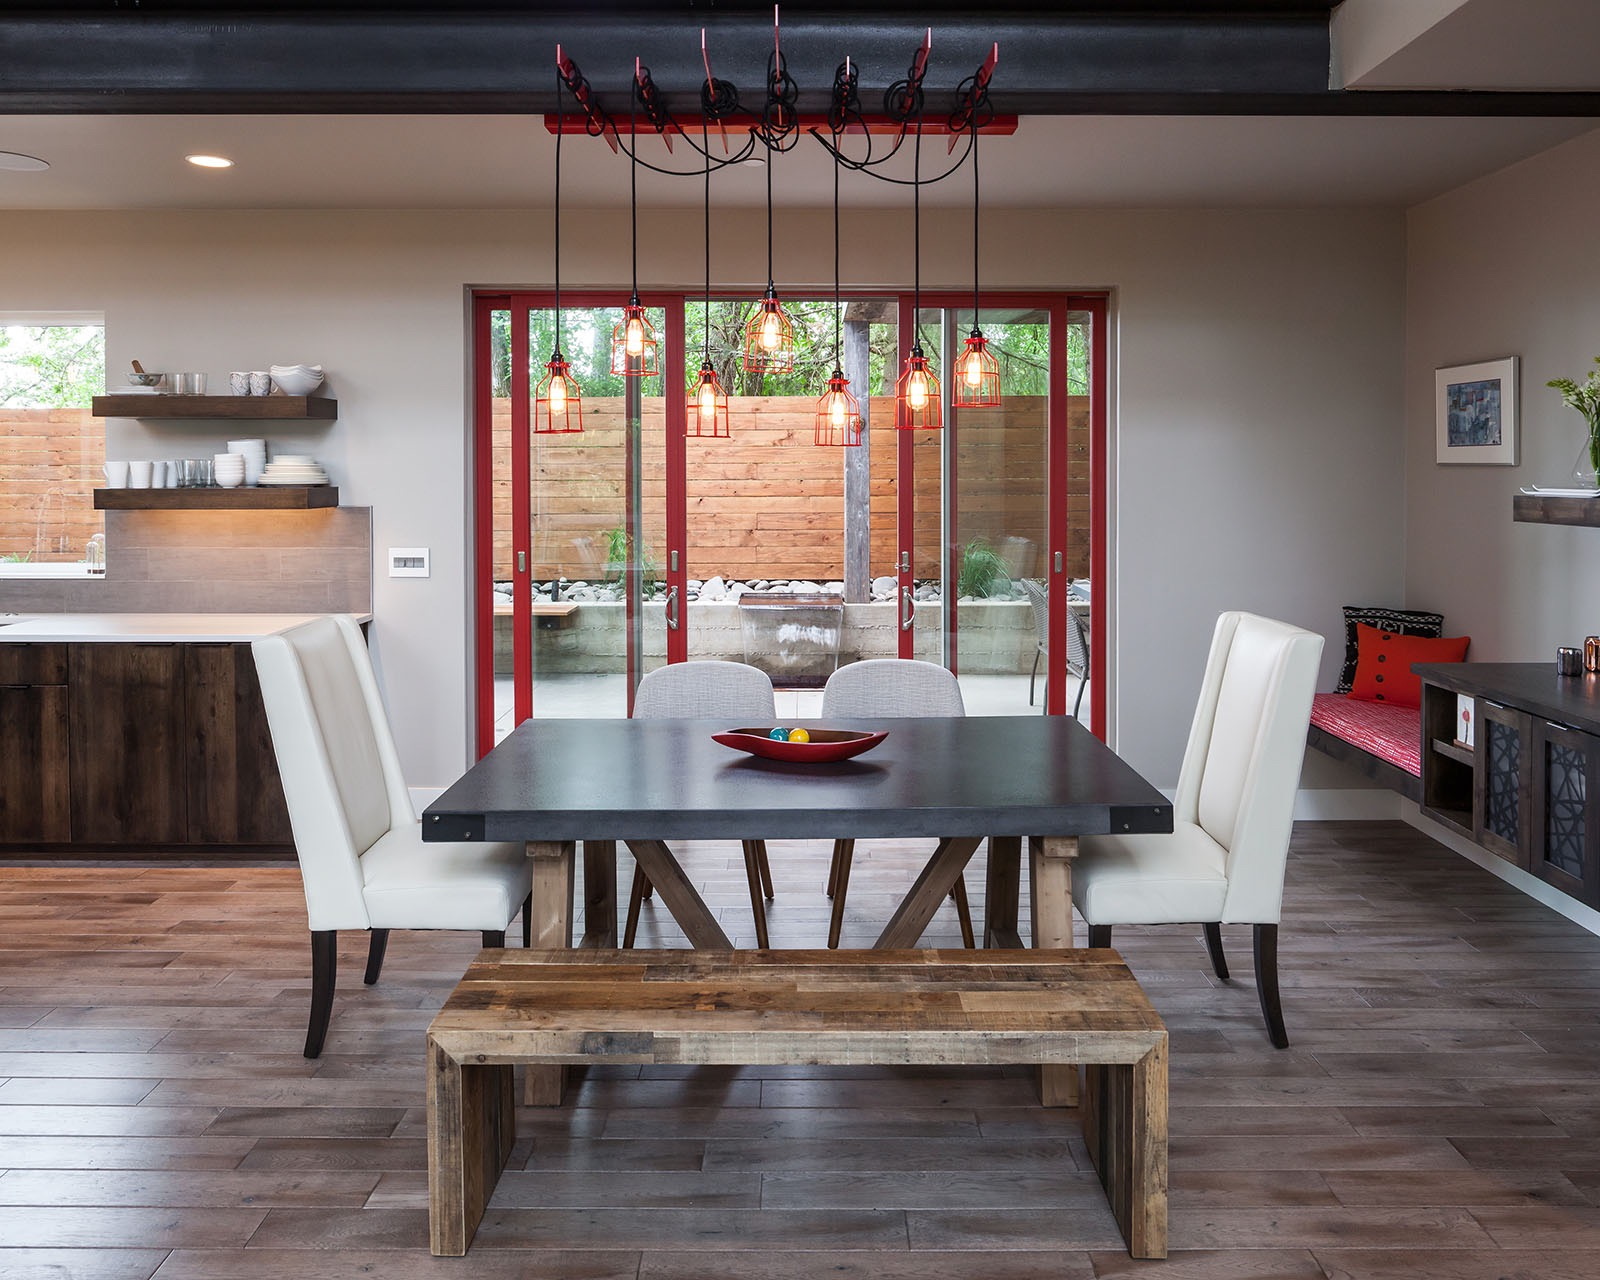 Contemporary Modern Dining Room Features Red Sliding Doors And Creative Light Fixture (Image 2 of 13)